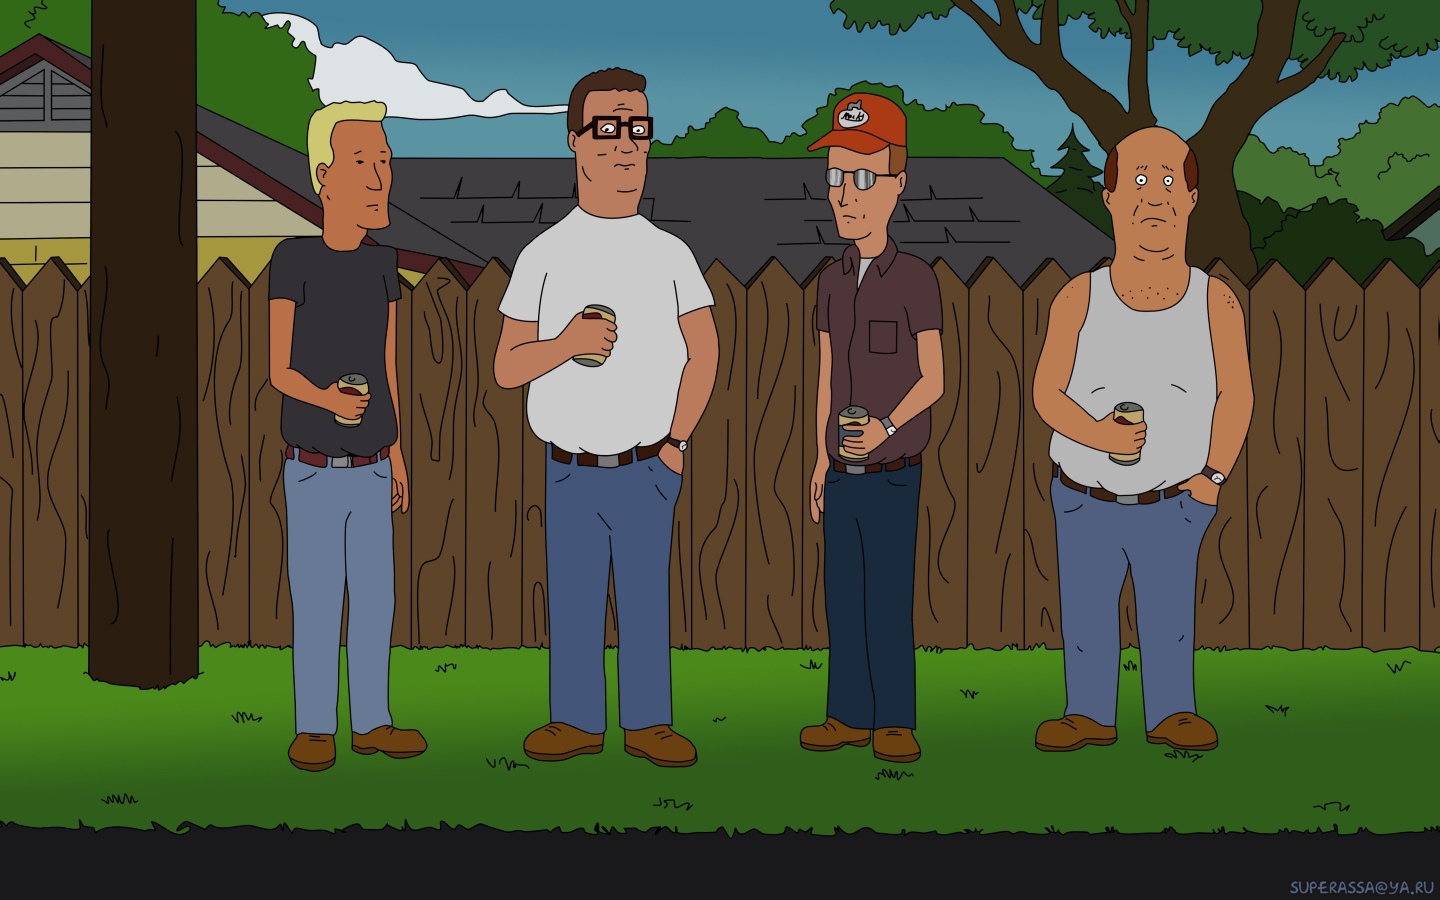 Wallpaper From Russian Funs Yup King Of The Hill 1070524